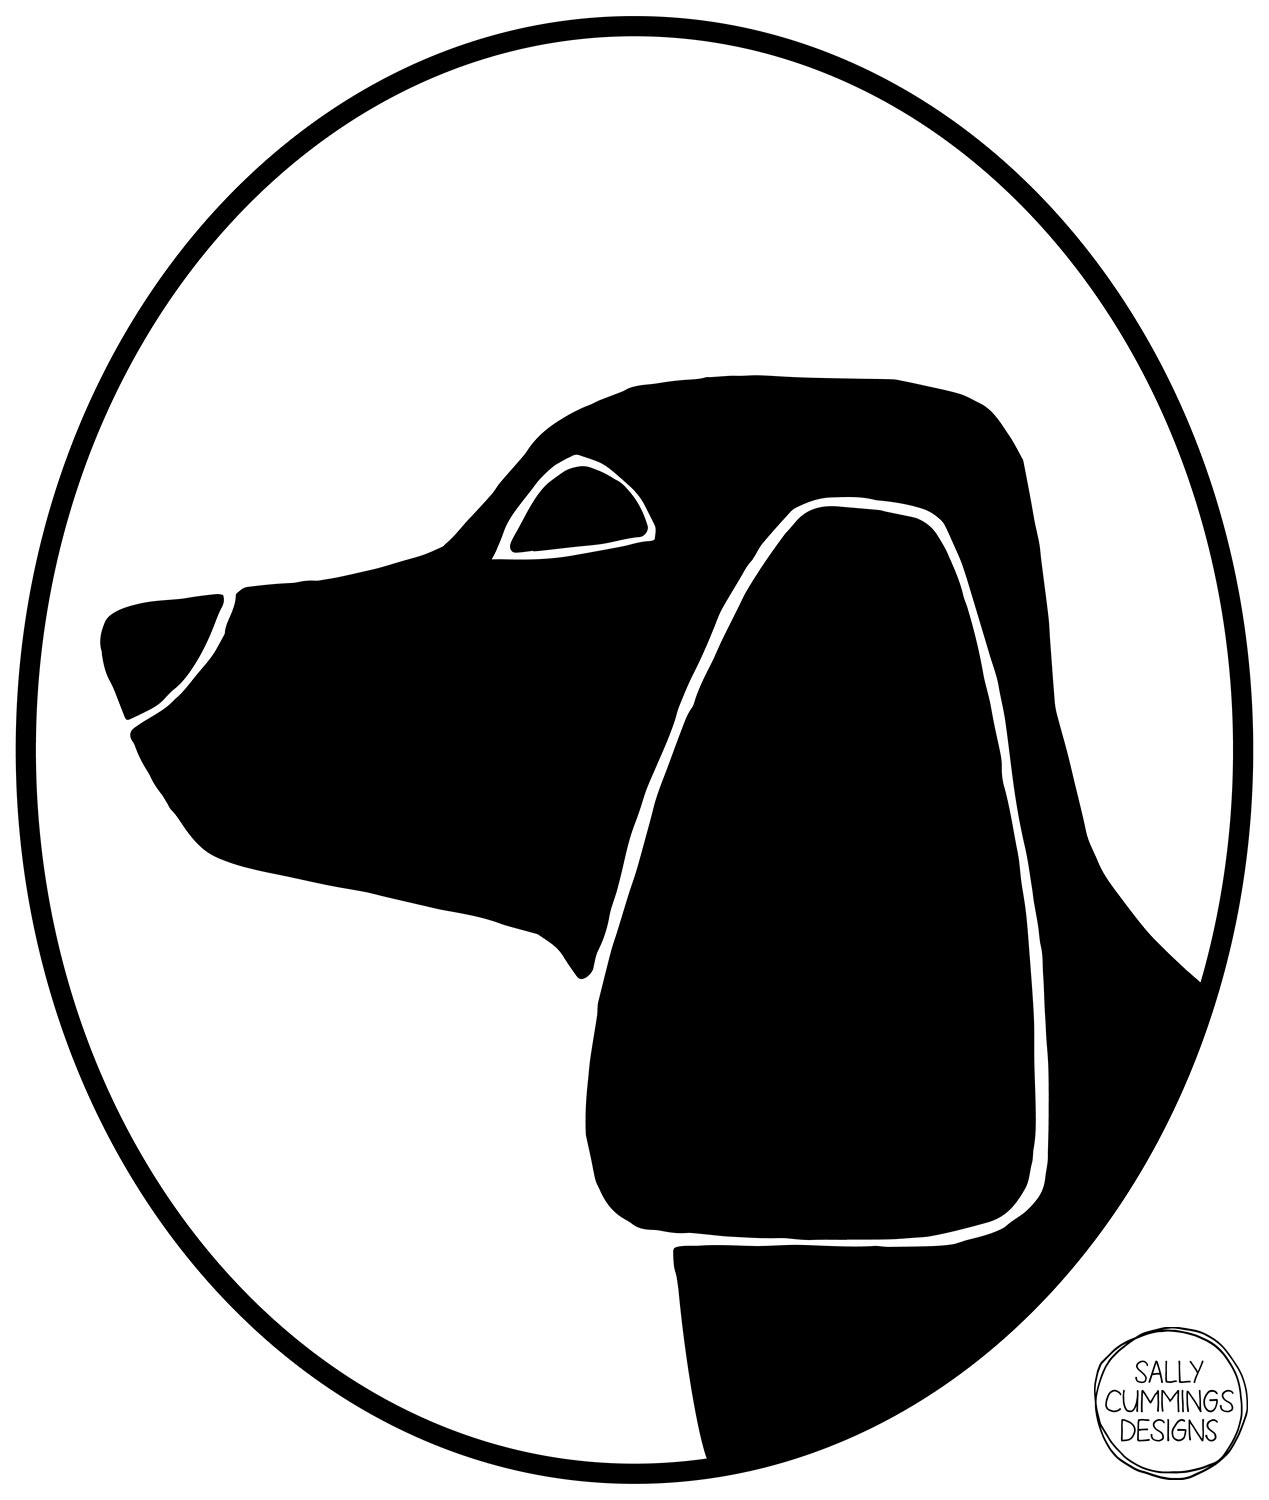 Sally Cummings Designs - Dog Cameo Oval 3 (Beagle)